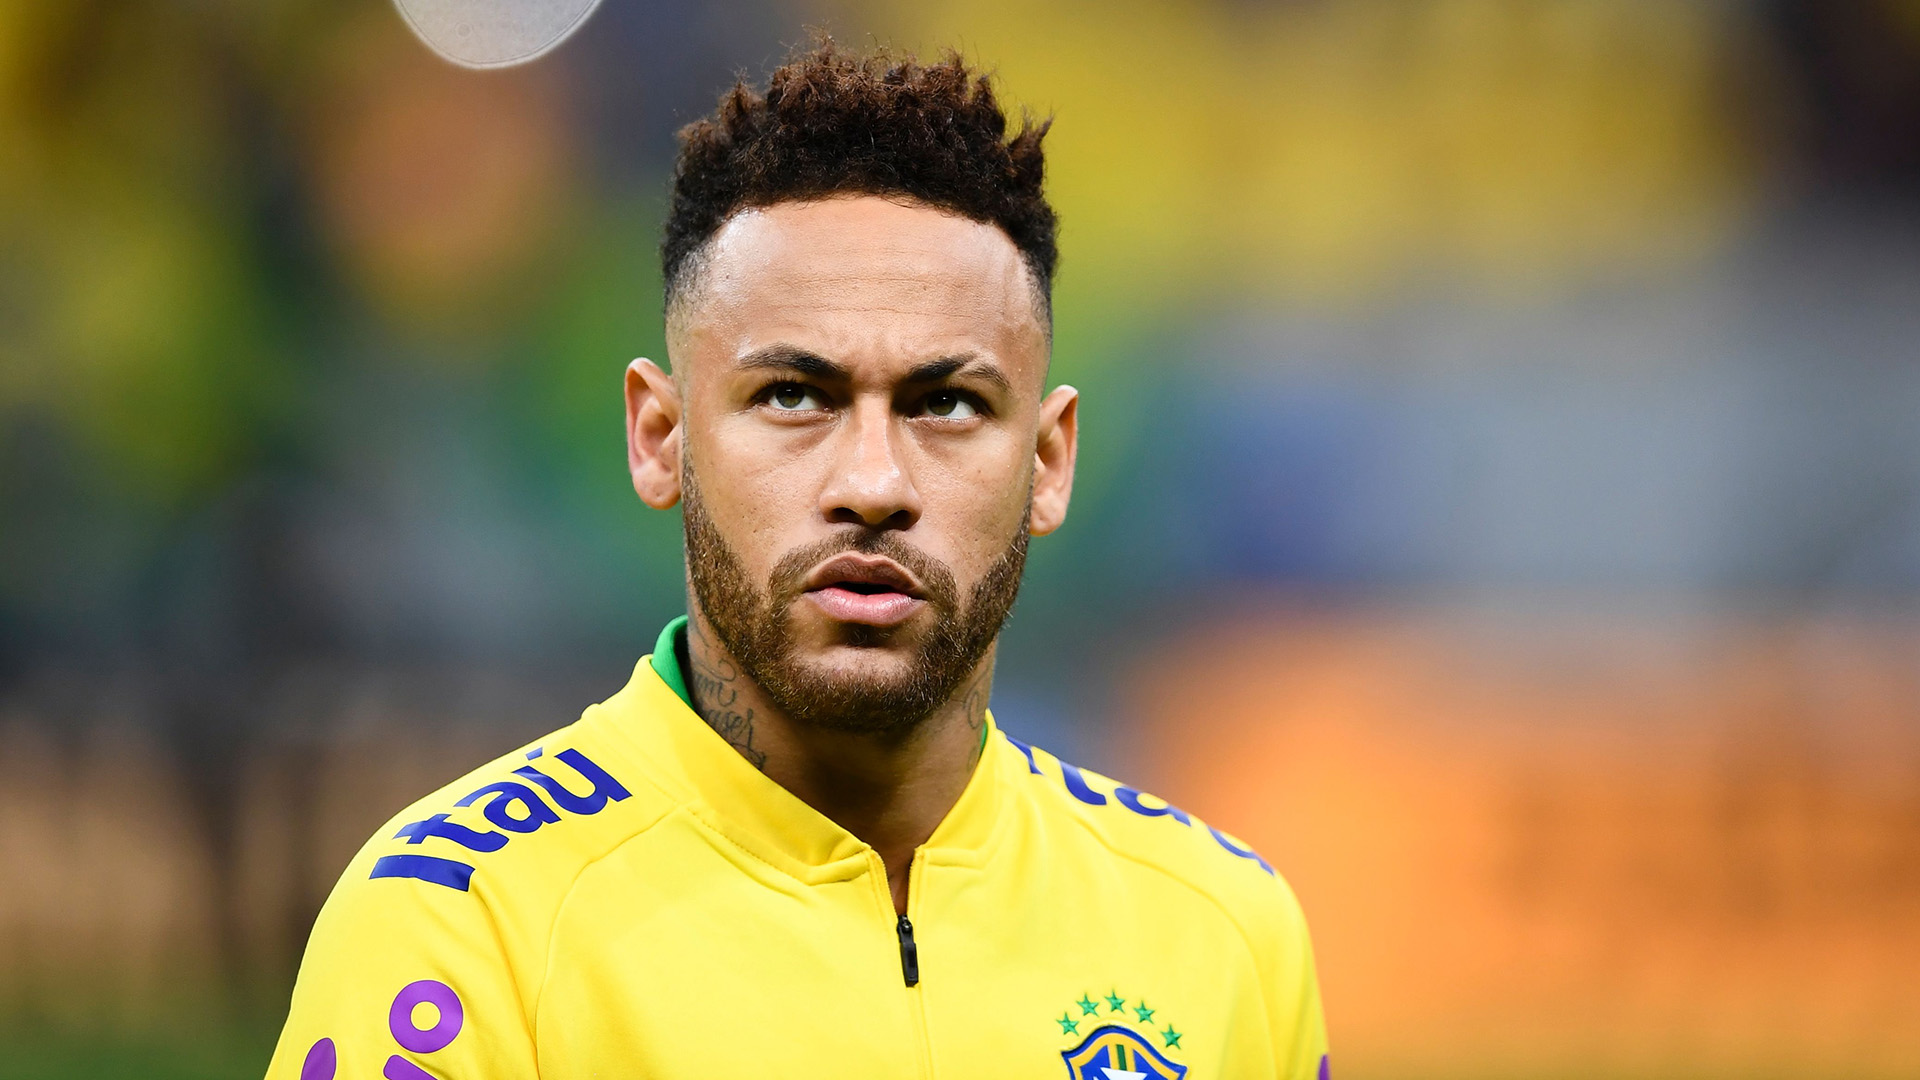 Neymar speaking to police about video release